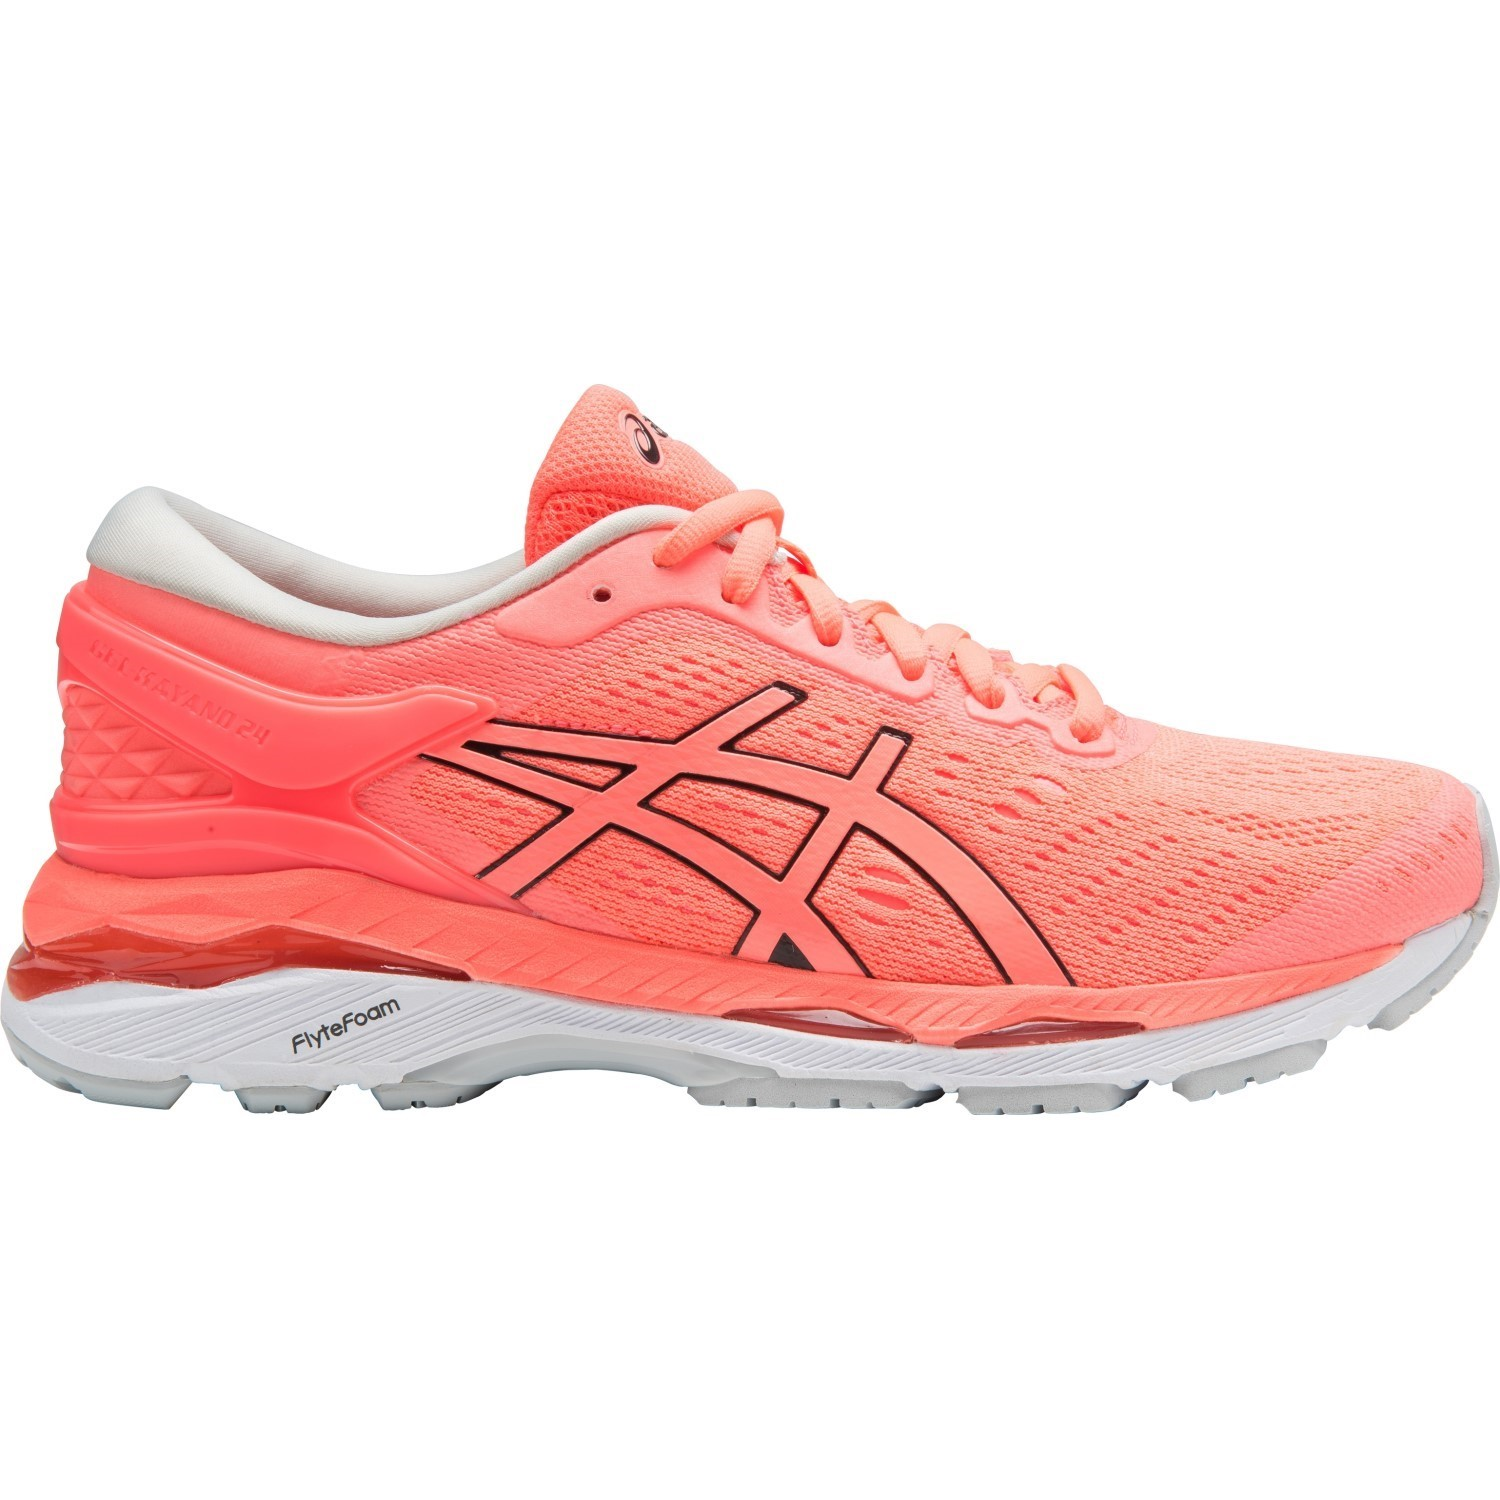 Asics Gel Kayano 24 - Womens Running Shoes - Flash Coral Black White ... 17b8fbbd342c